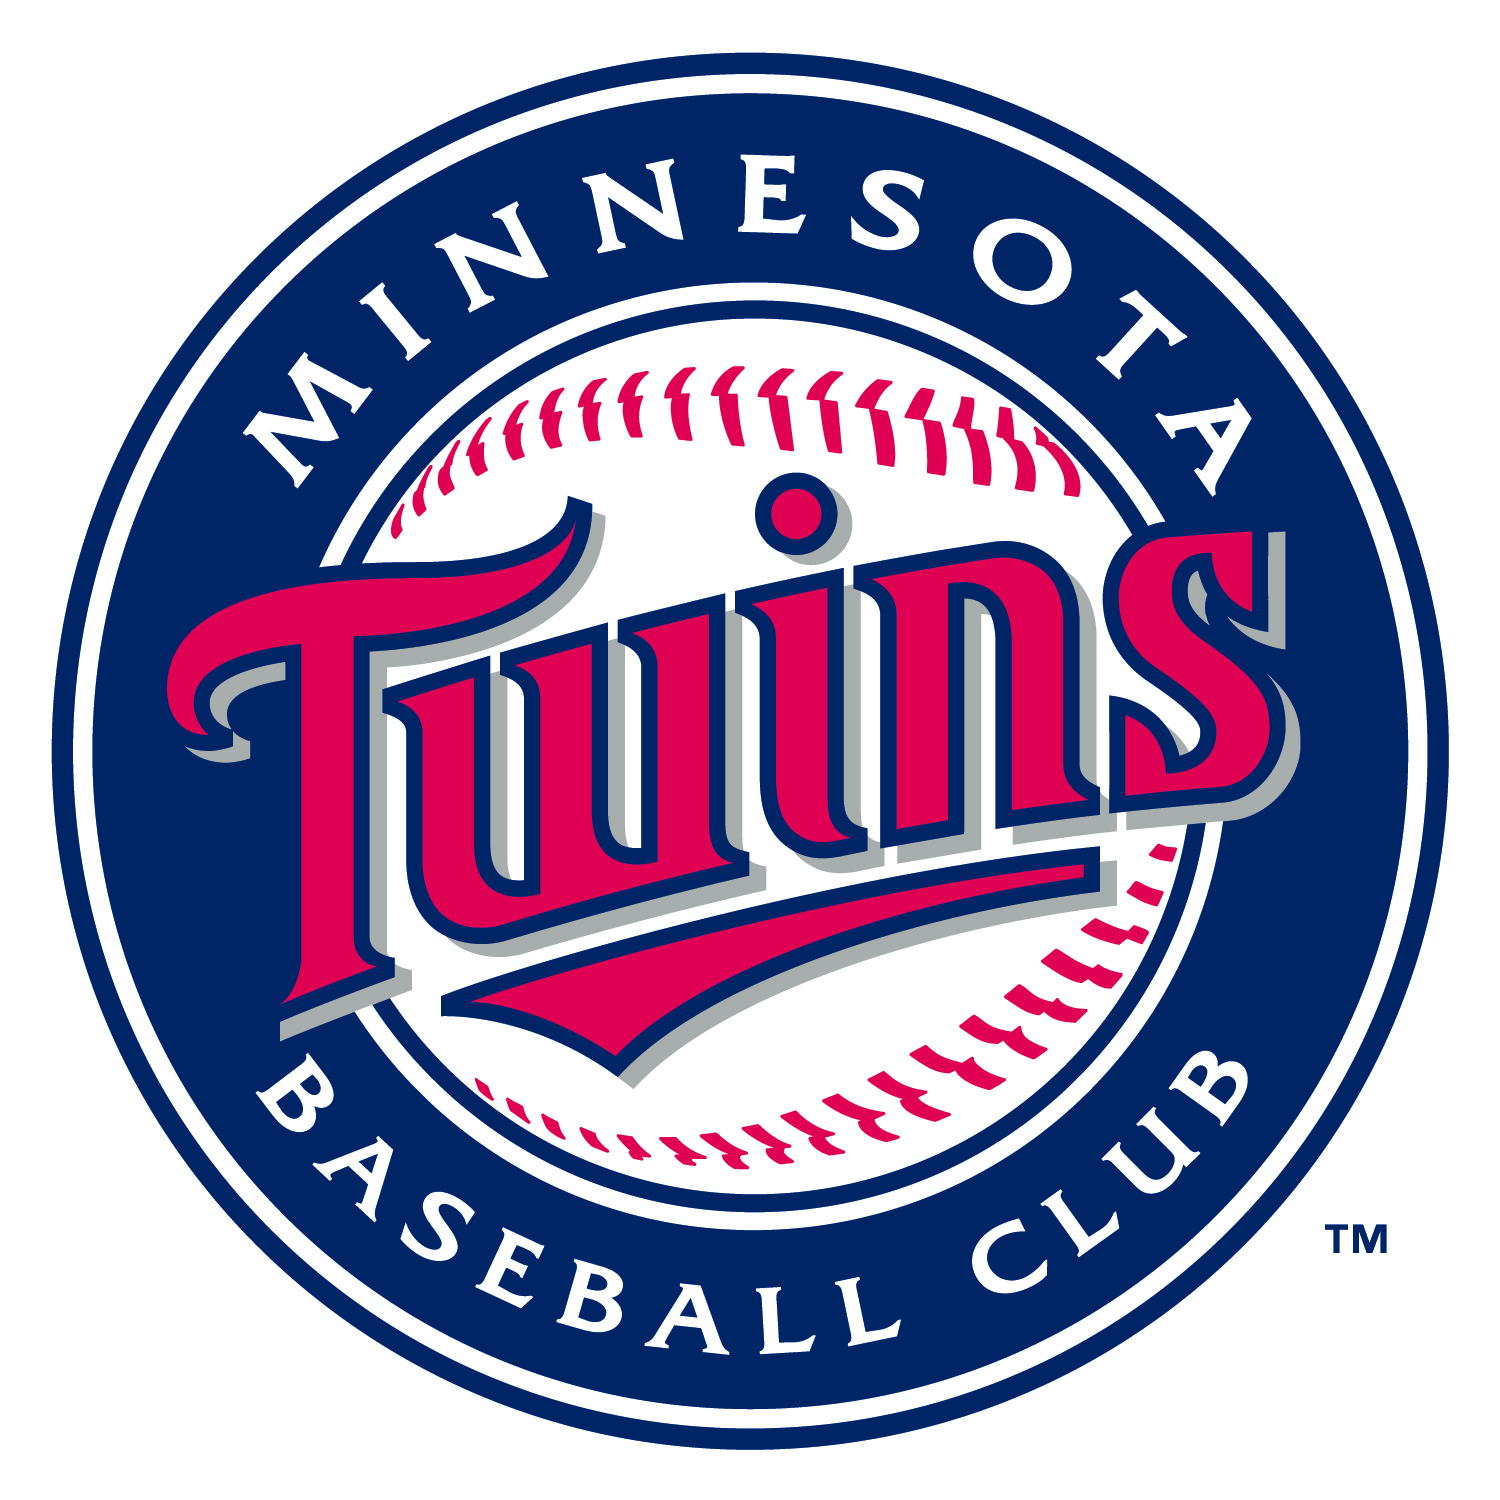 Minnesota Twins, Twins, MLB